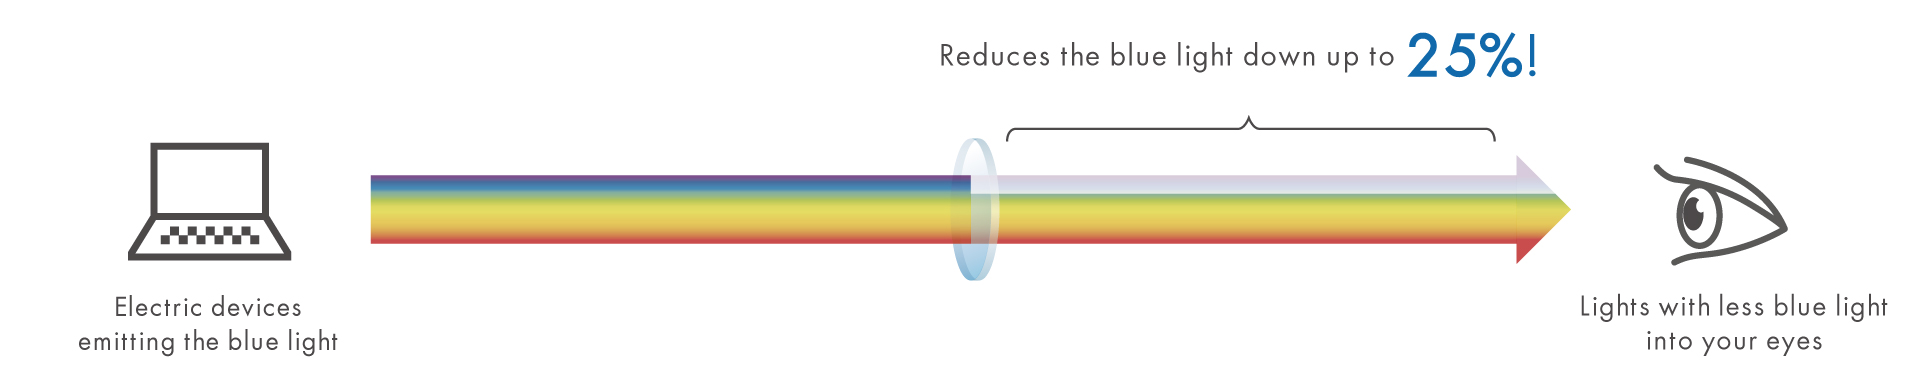 Reduces the blue light down by up to 25%!